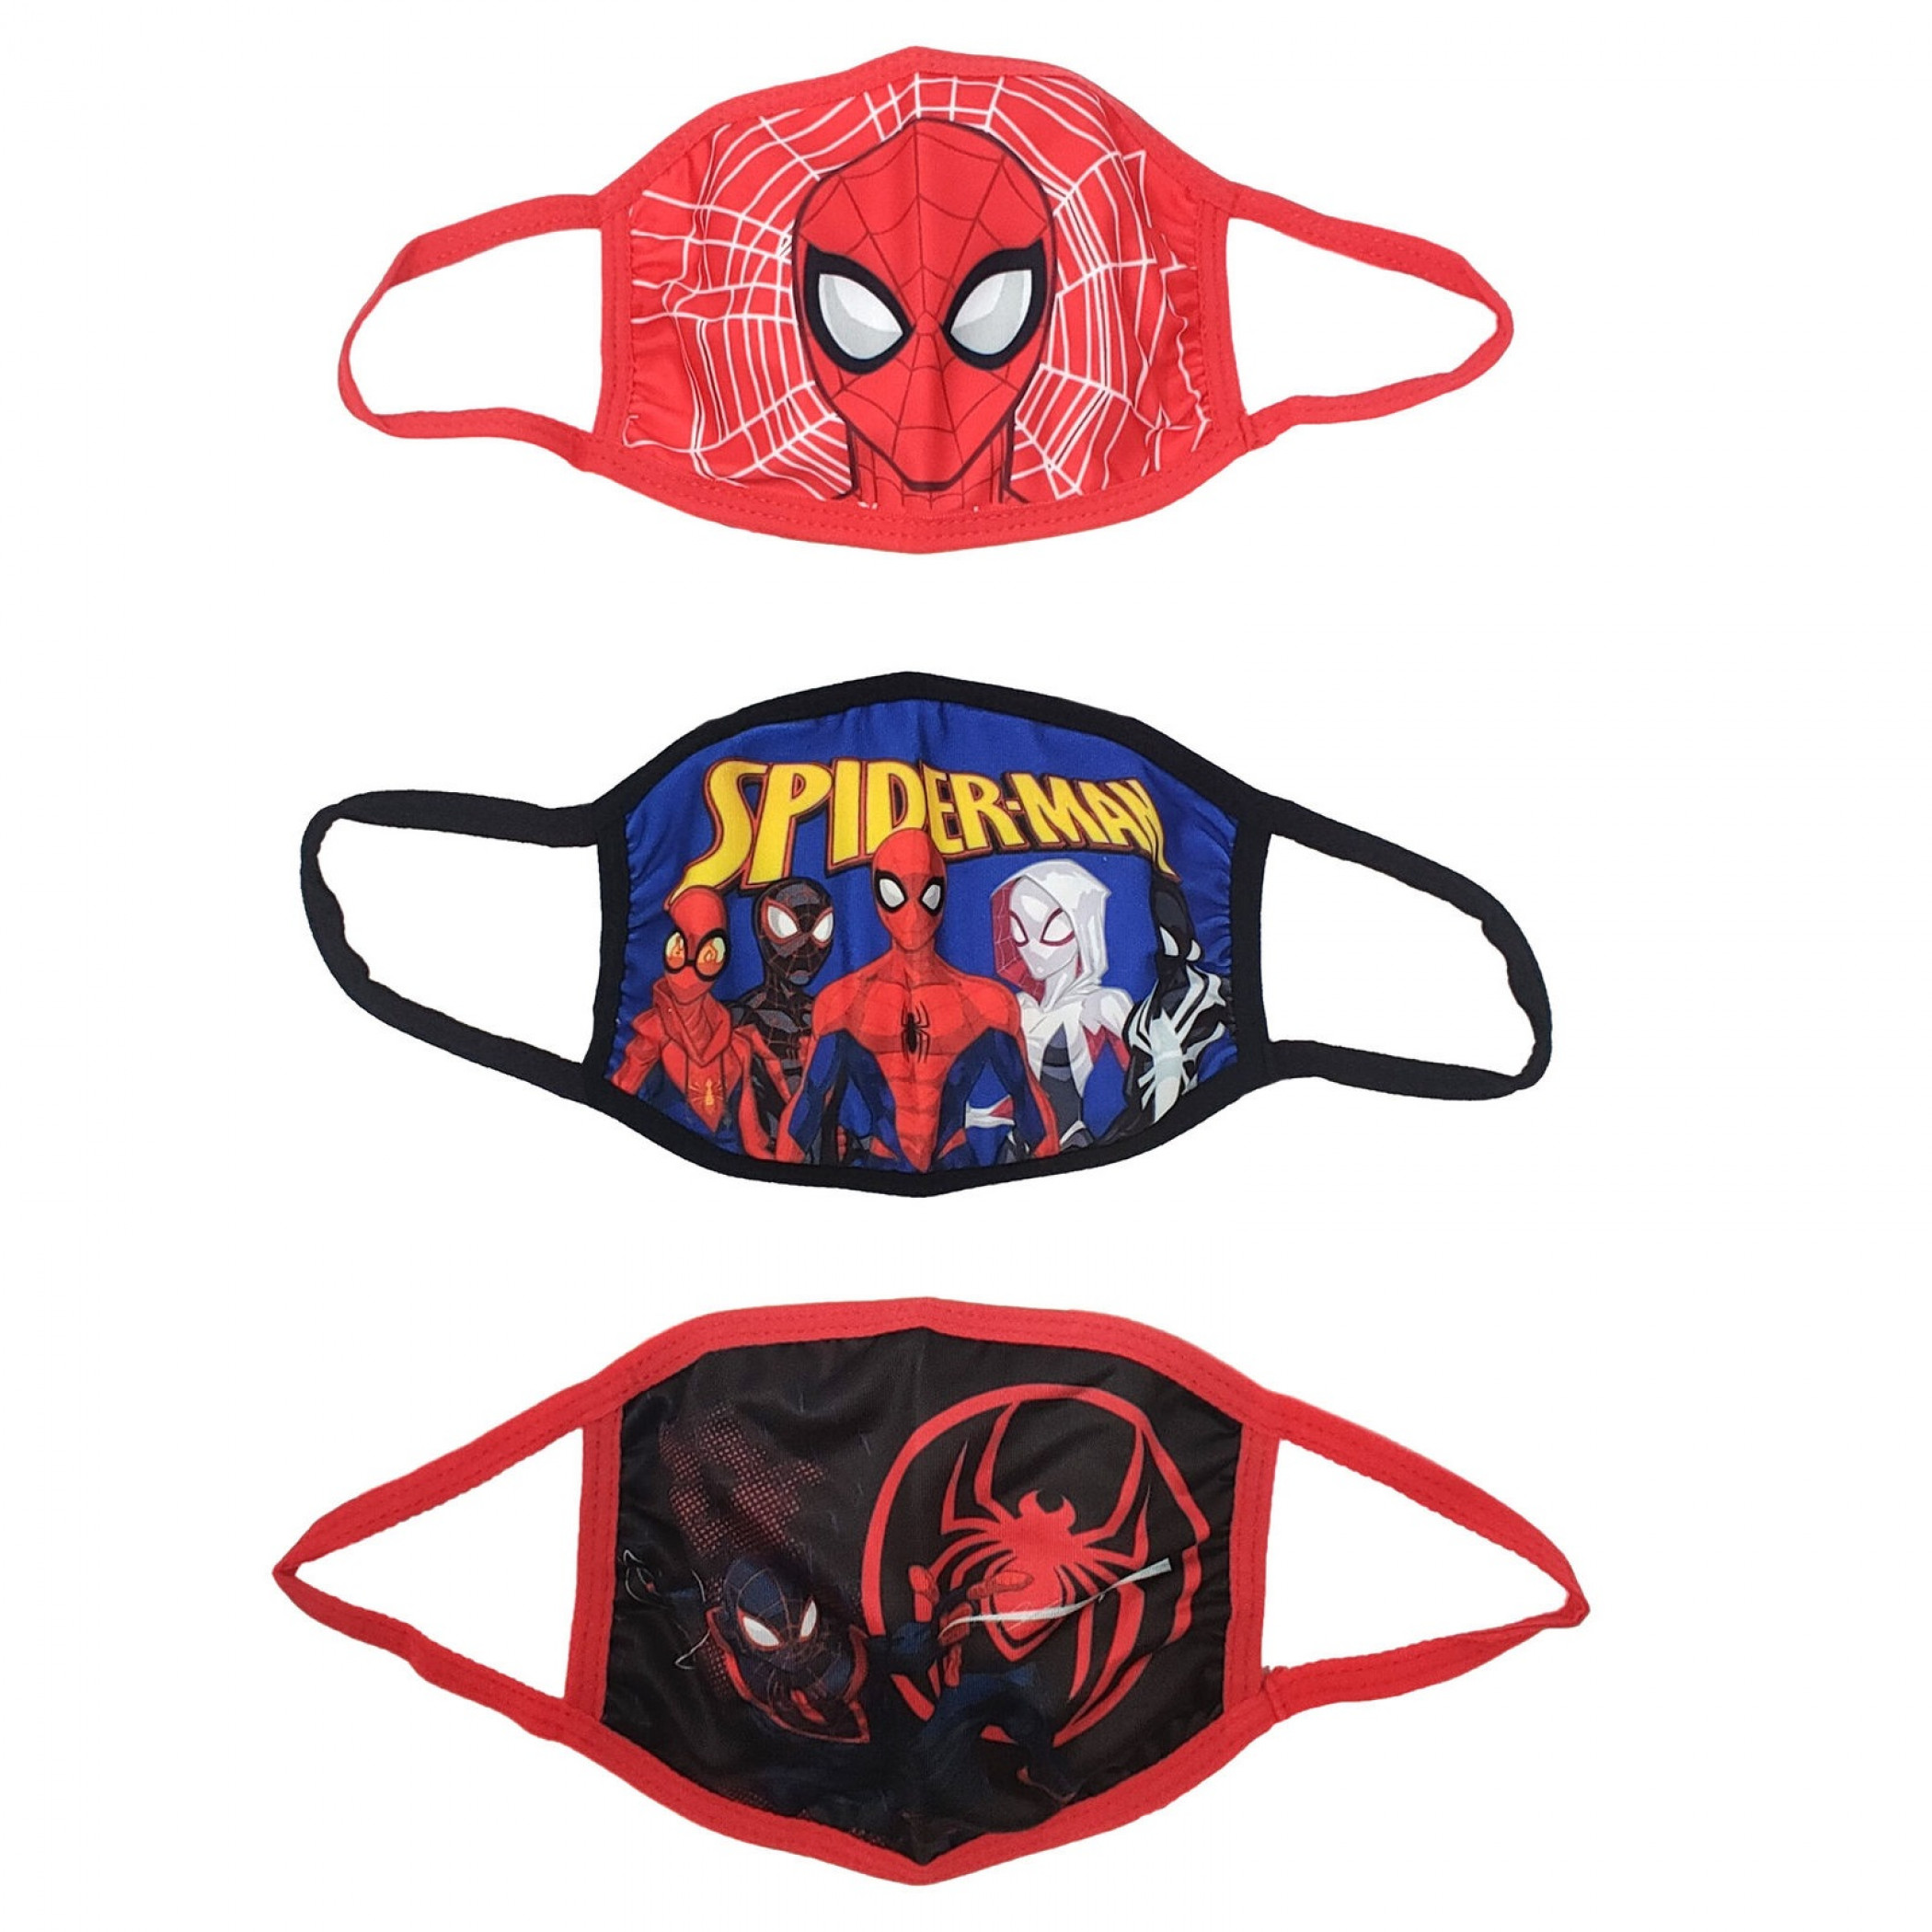 Spider-Man and Miles Morales Team Characters 3-Pack of Kids Face Masks